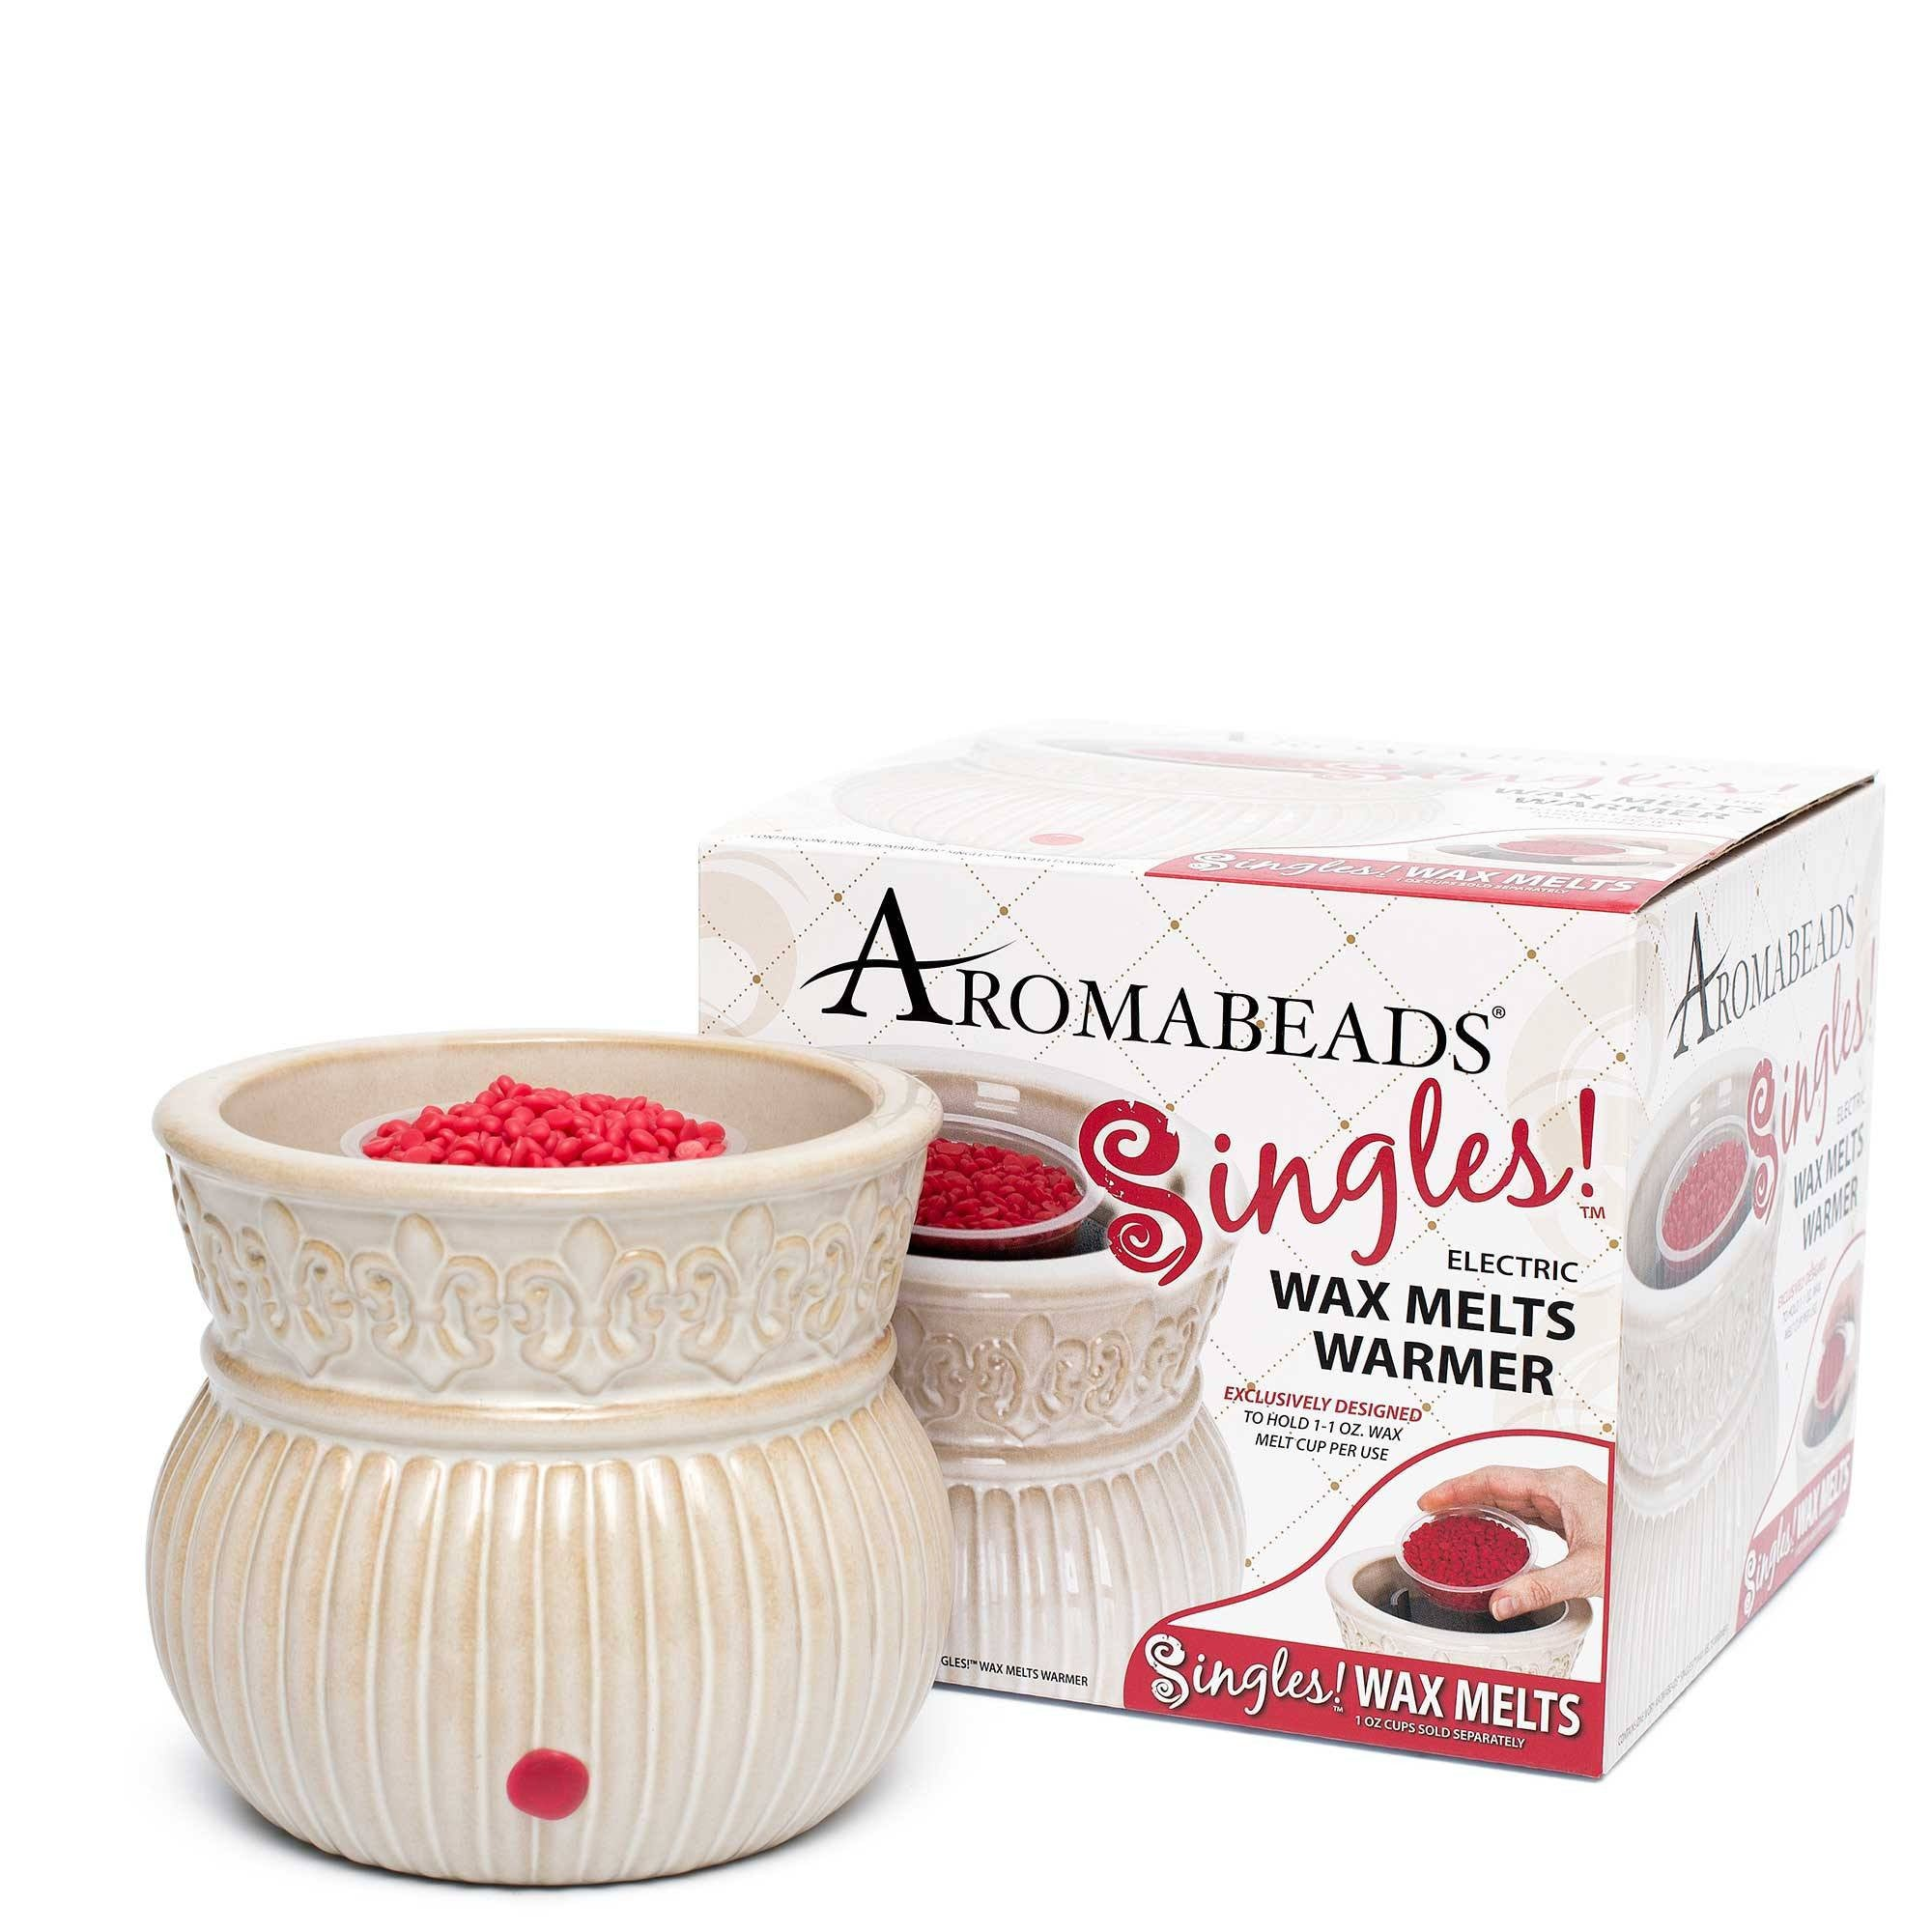 Aromabeads Singles Hidden Oak Cottage Scented Wax Melts - Candlemart.com - 2